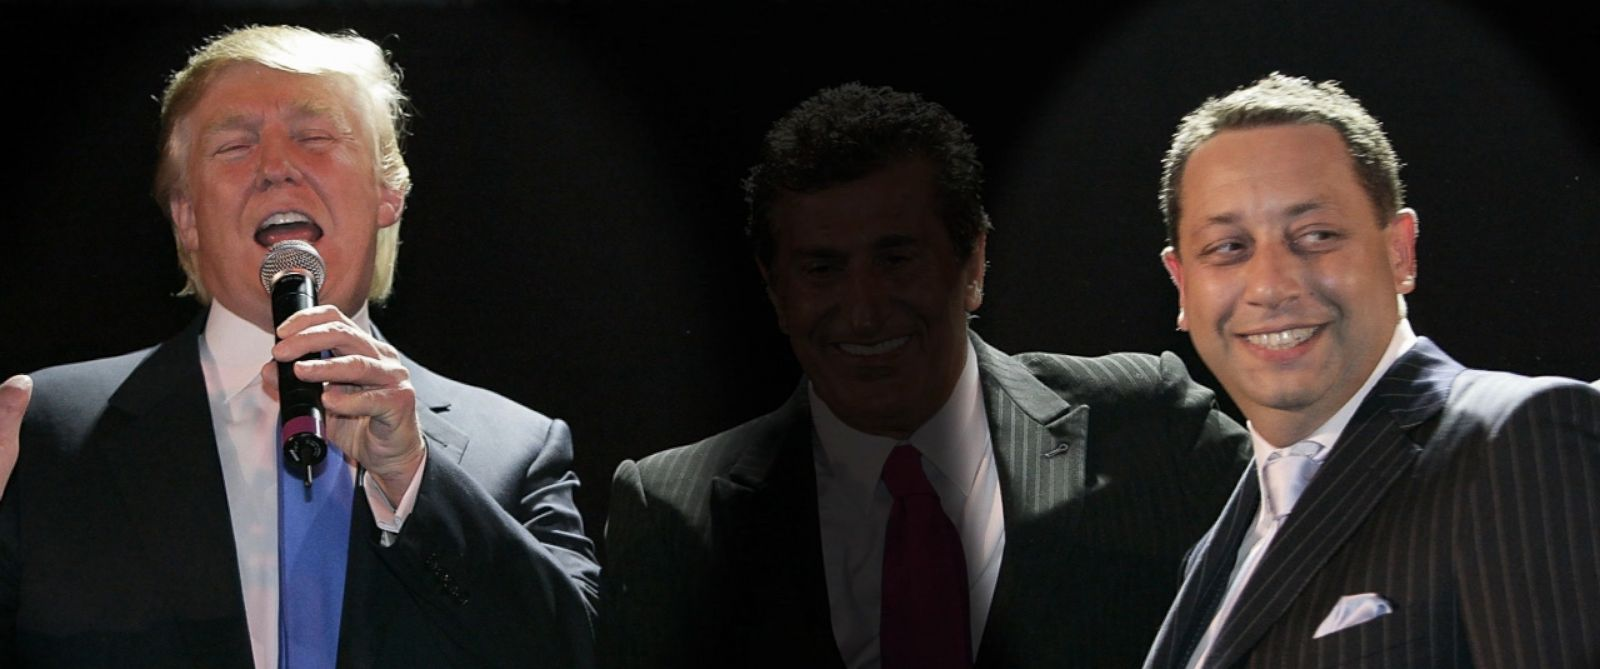 PHOTO: Donald Trump, highlighted left, stands with Felix Sater, highlighted right, at the Trump SoHo Launch Party on Sept. 19, 2007 in New York. Highlights added by ABC news.